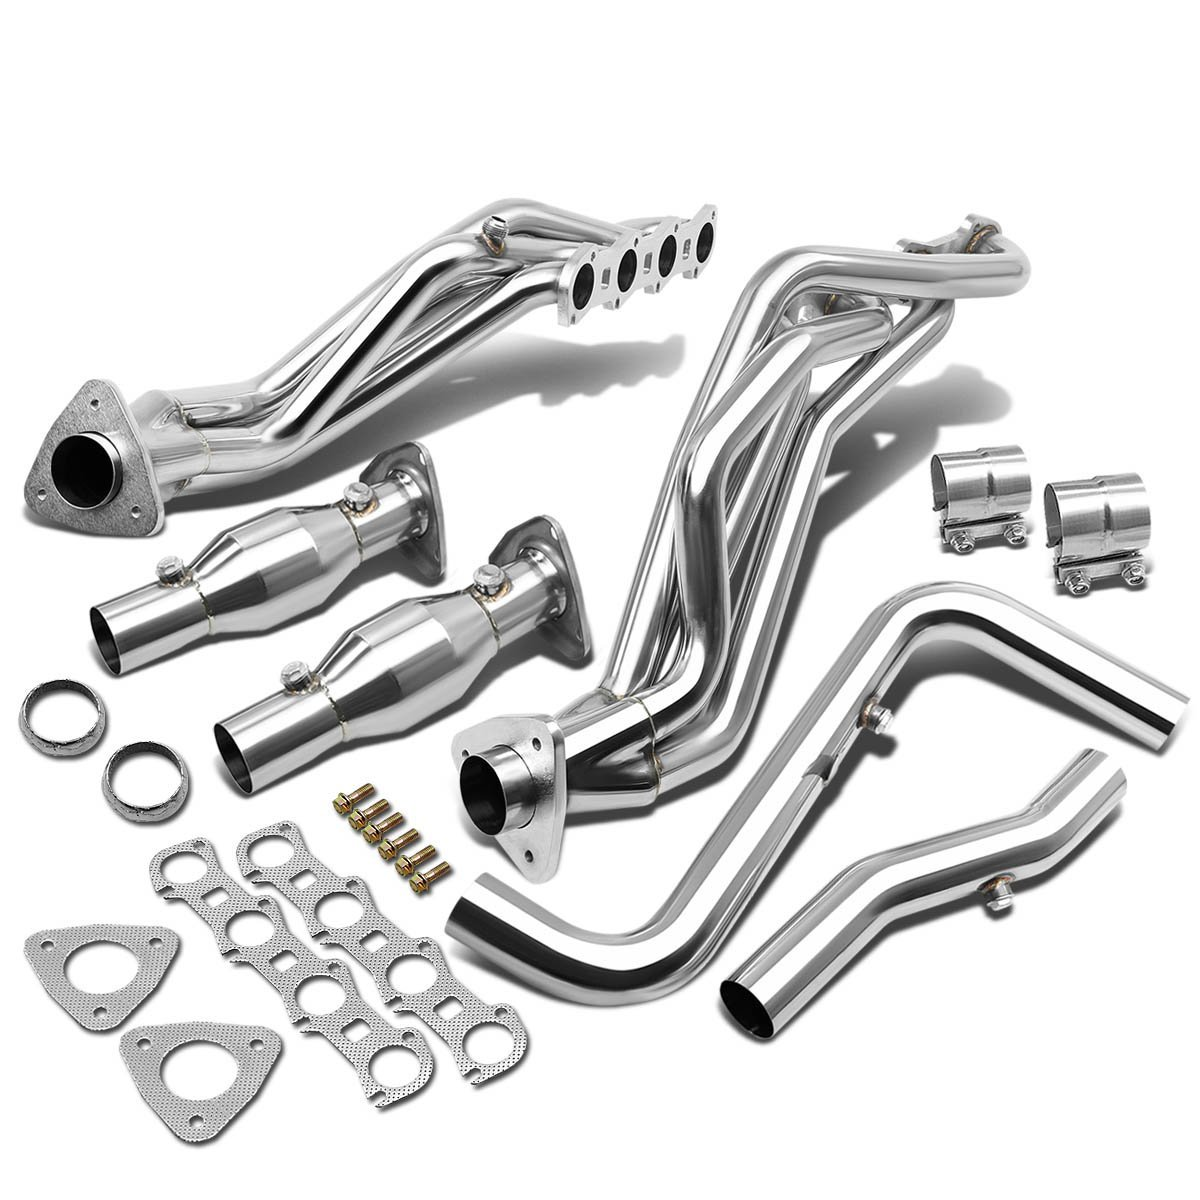 5 4l F150 Exhaust Diagram Enthusiast Wiring Diagrams \u2022 2004 F150  Exhaust Diagram 5 4l F150 Exhaust Diagram 2002